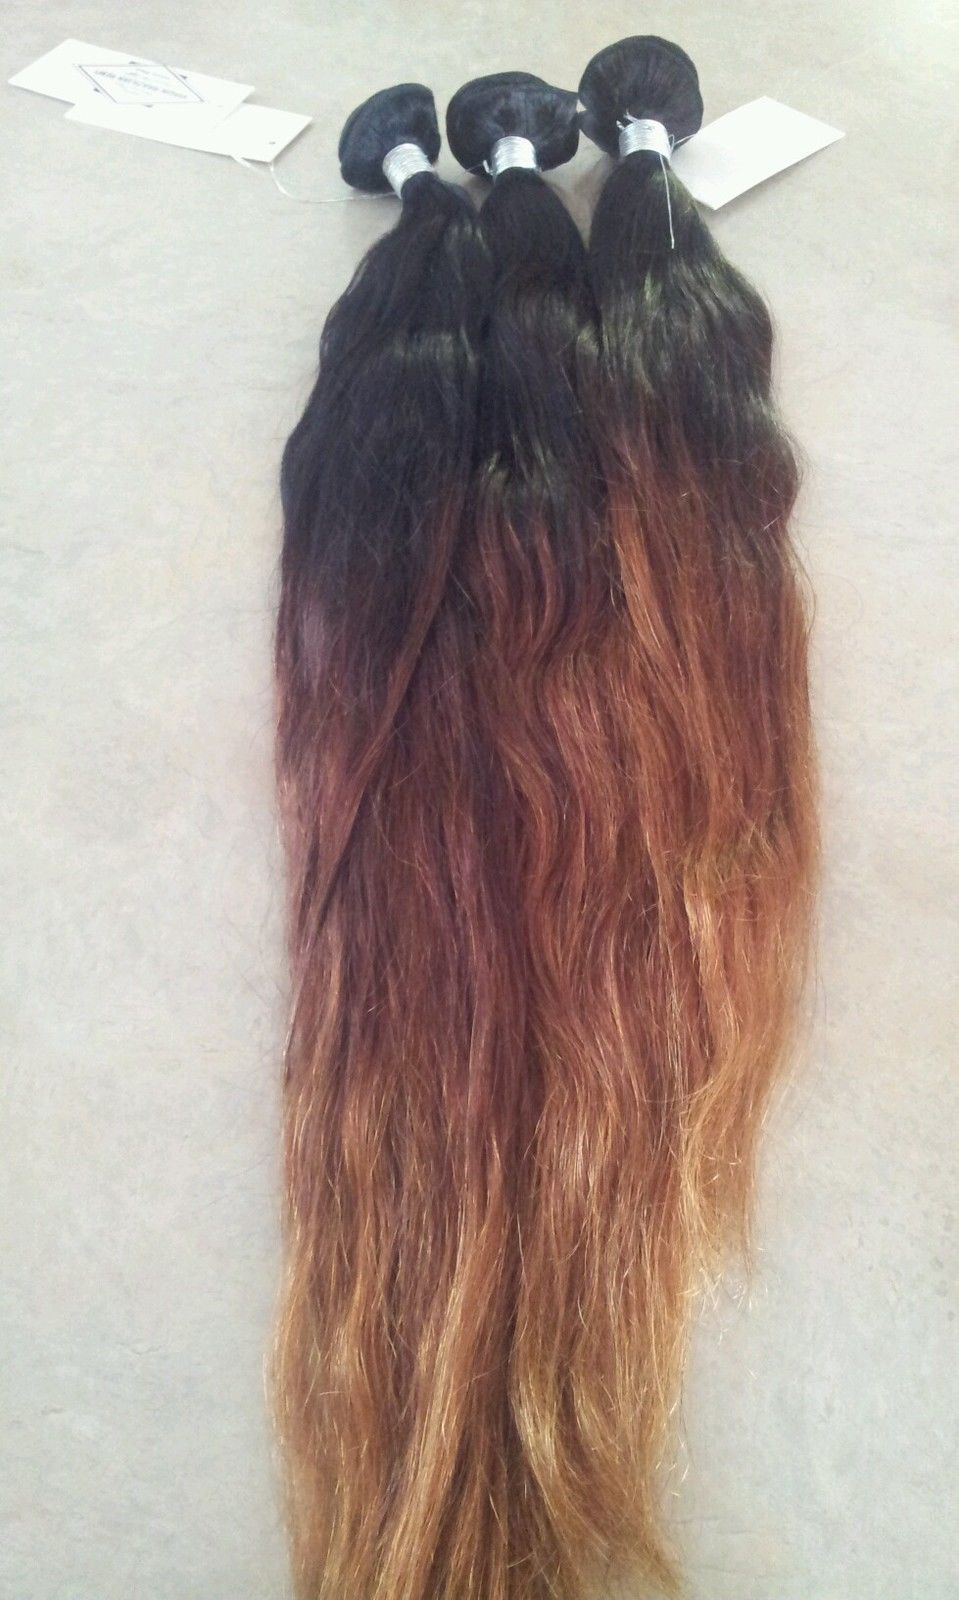 20 22 24 Brazilian Ombre Hair Extensions Full Sew In Weave